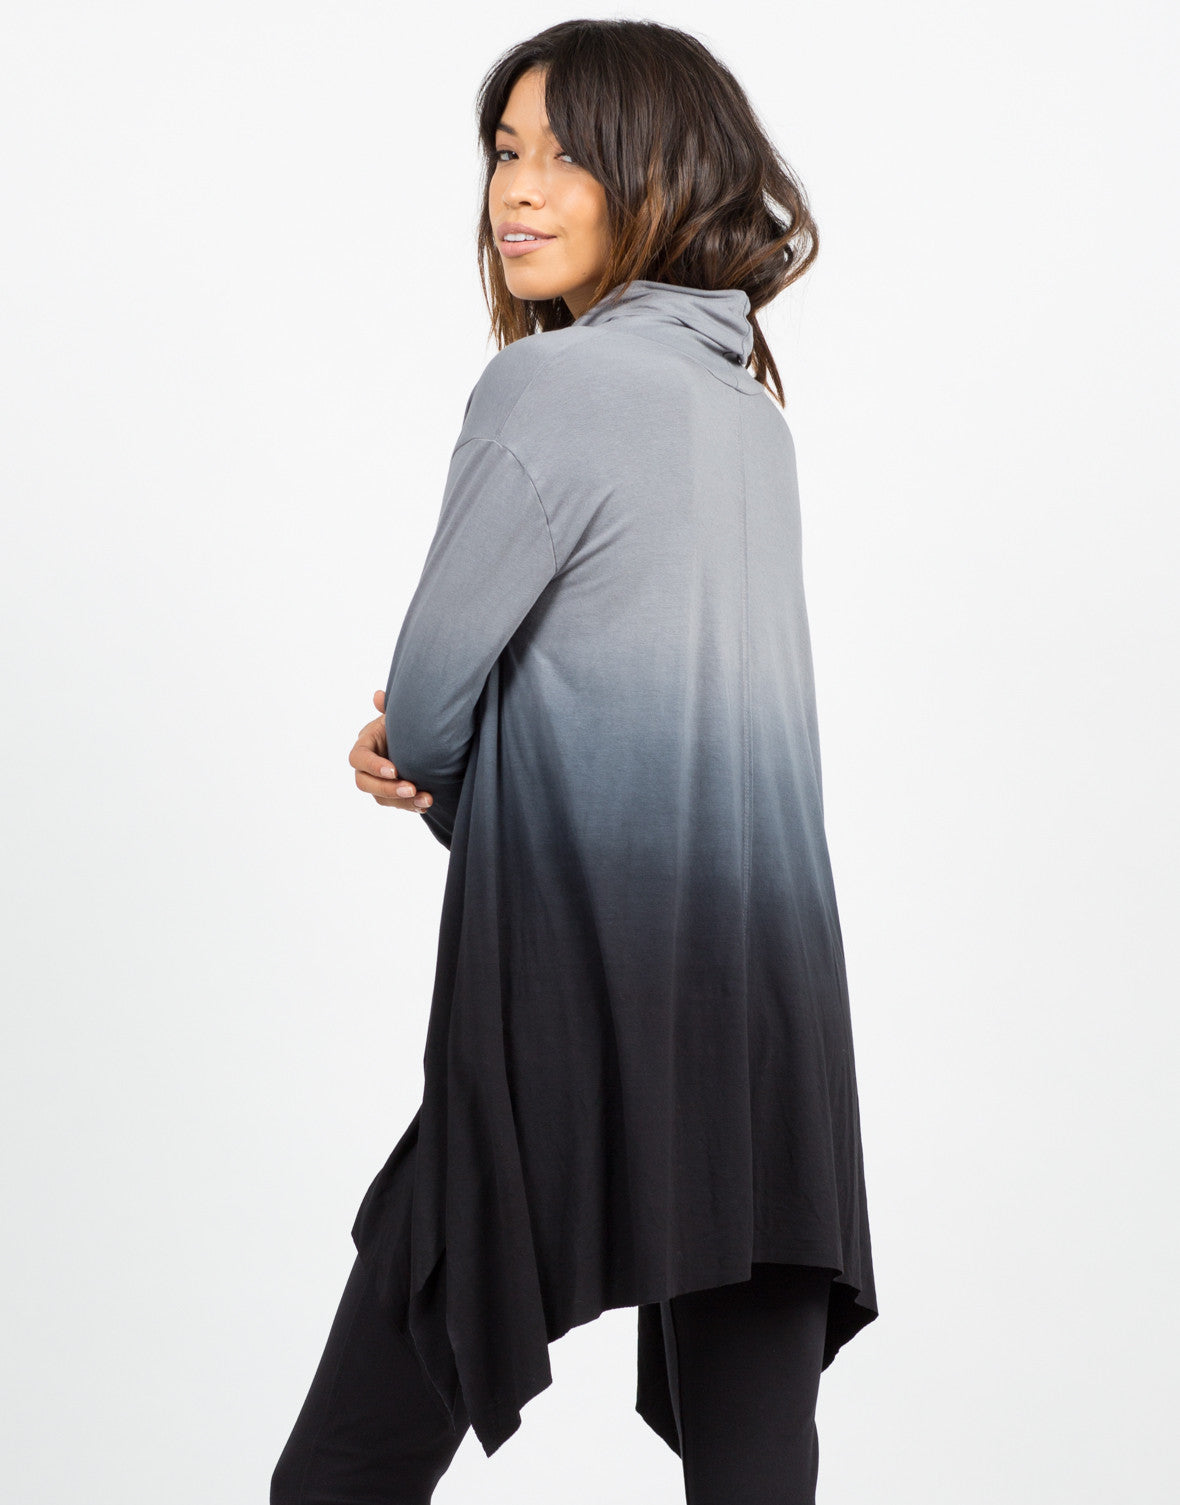 Back View of Oversized Ombre Top